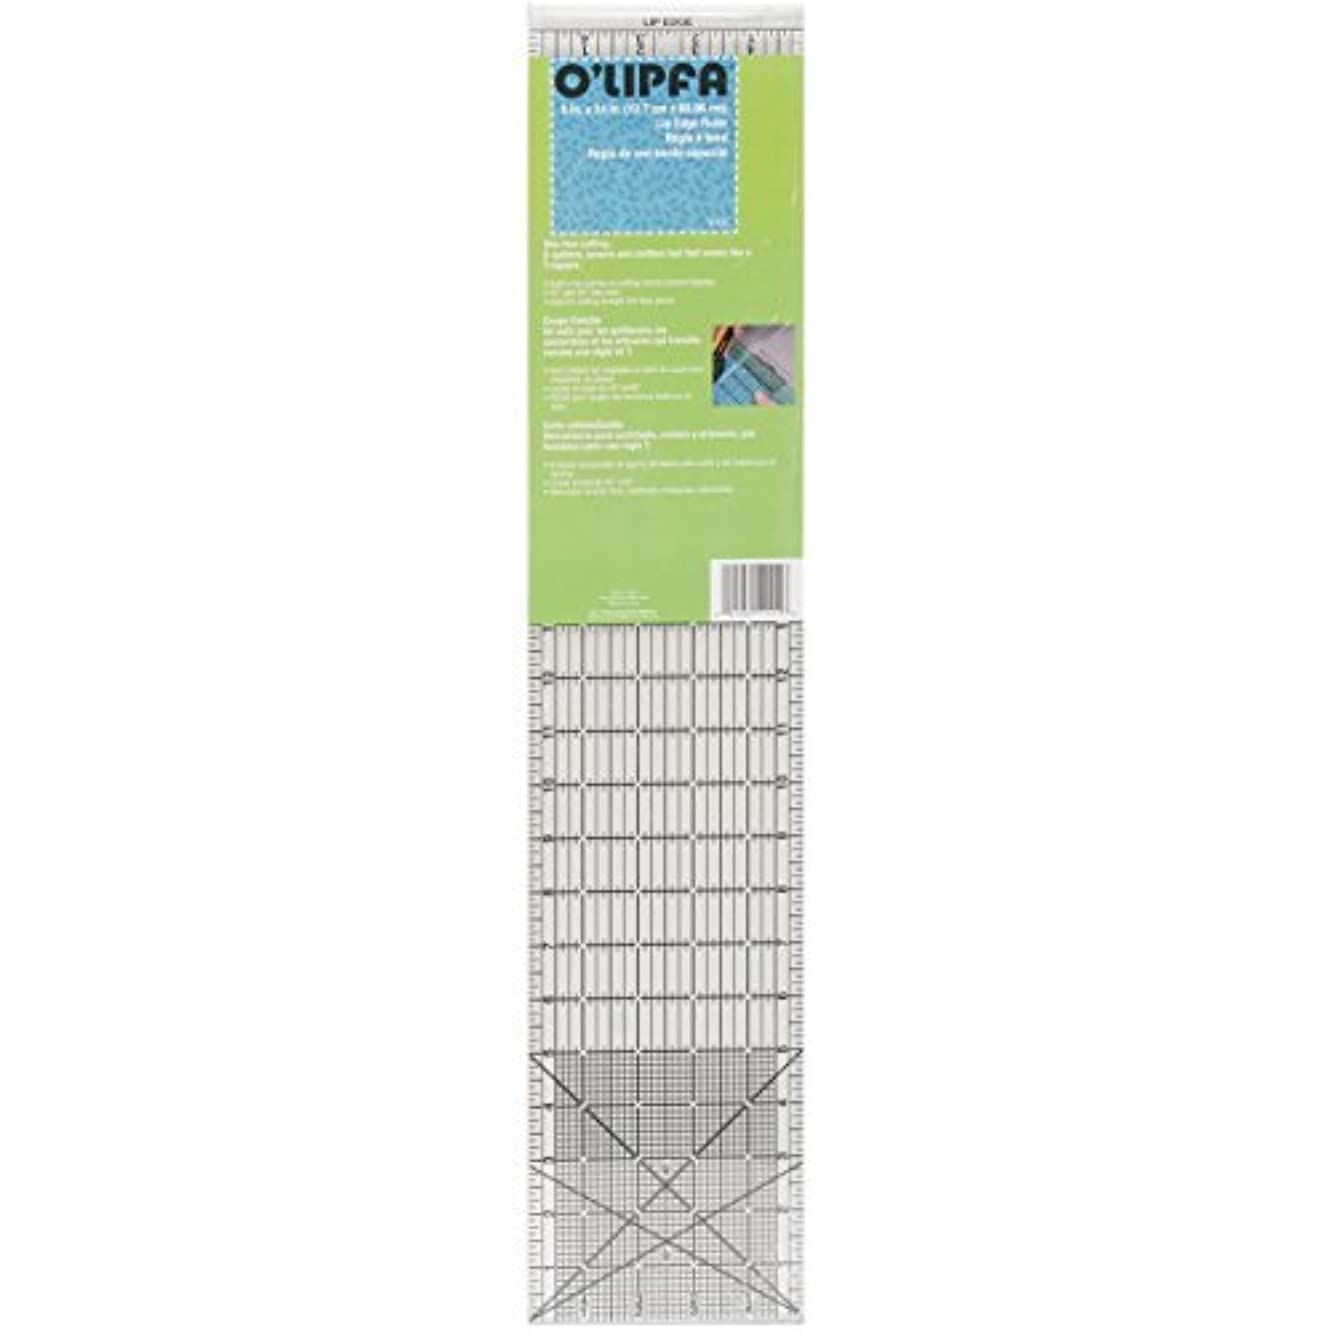 Bulk Buy: OLipfa Lip Edge Ruler 5